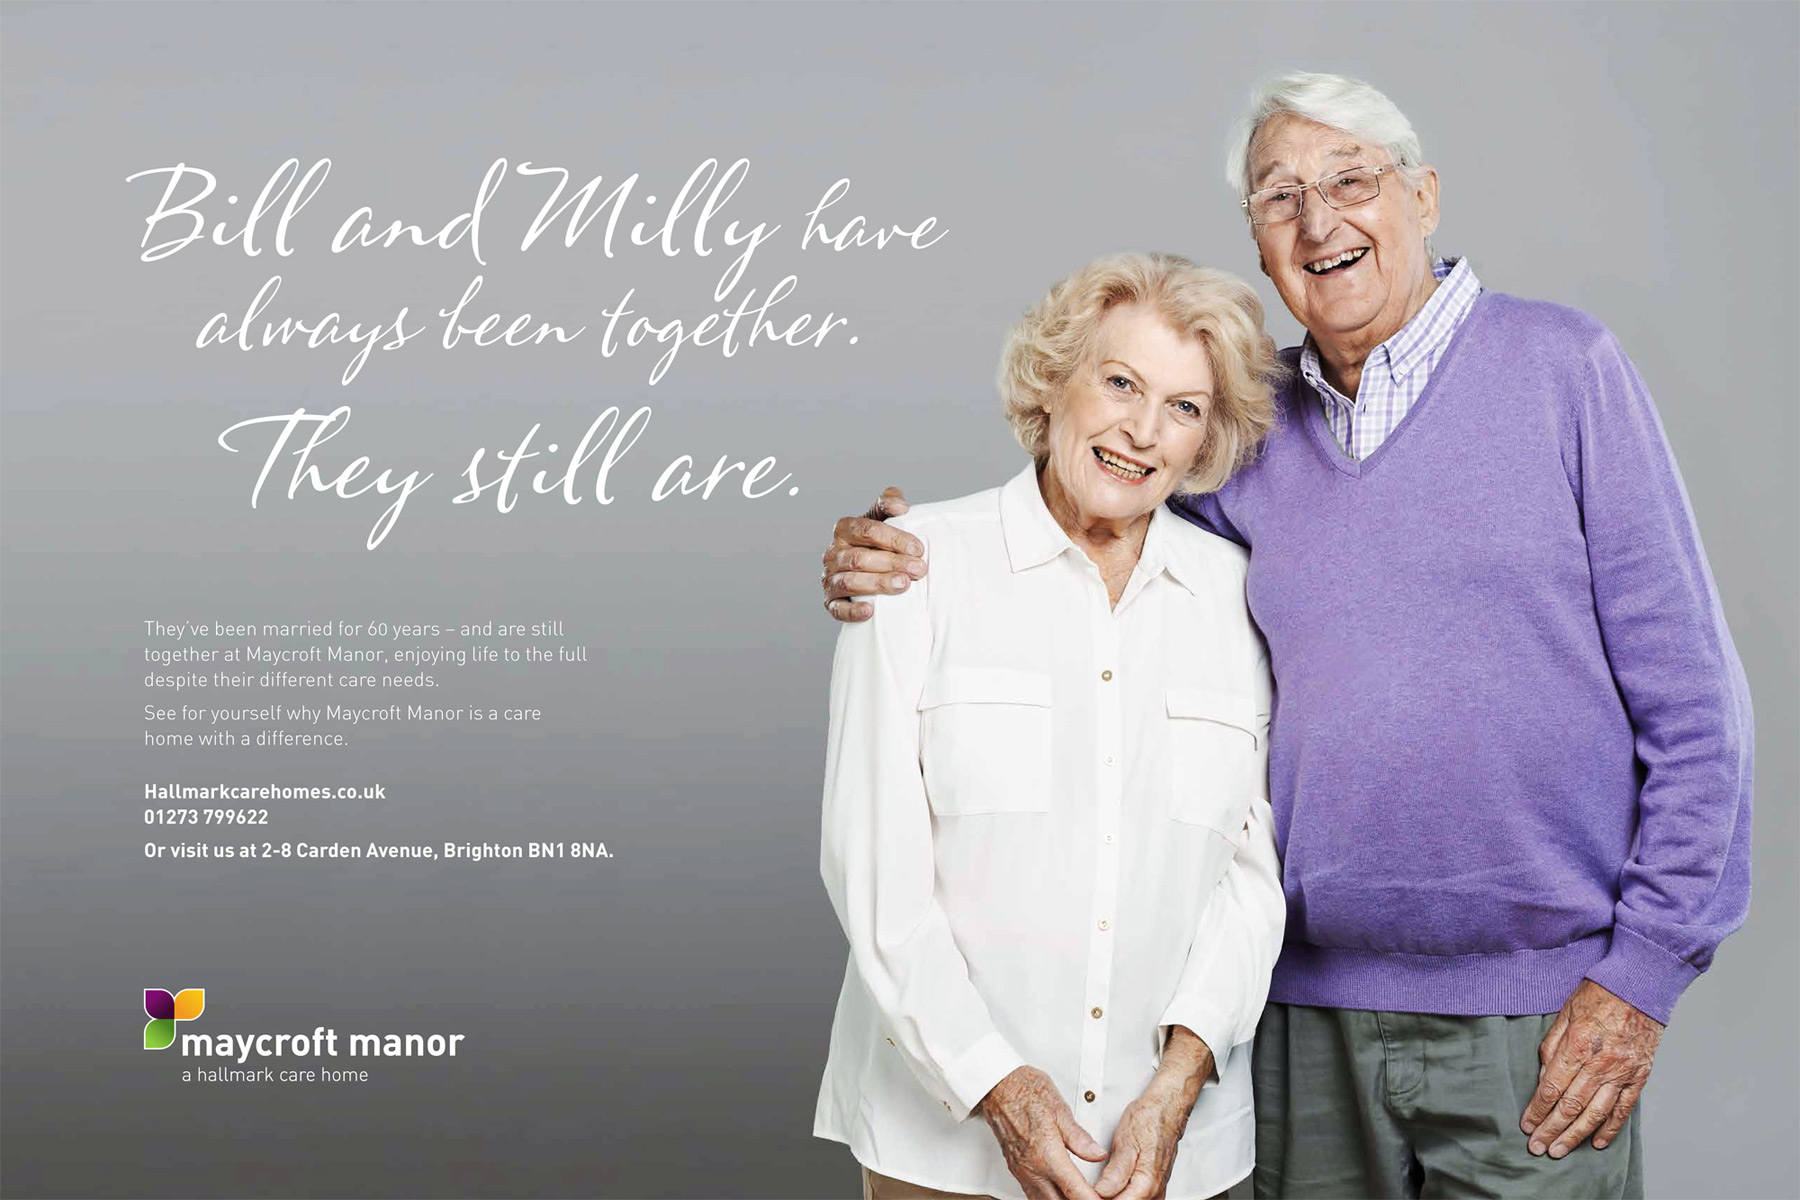 One of the adverts for Hallmark Care Homes